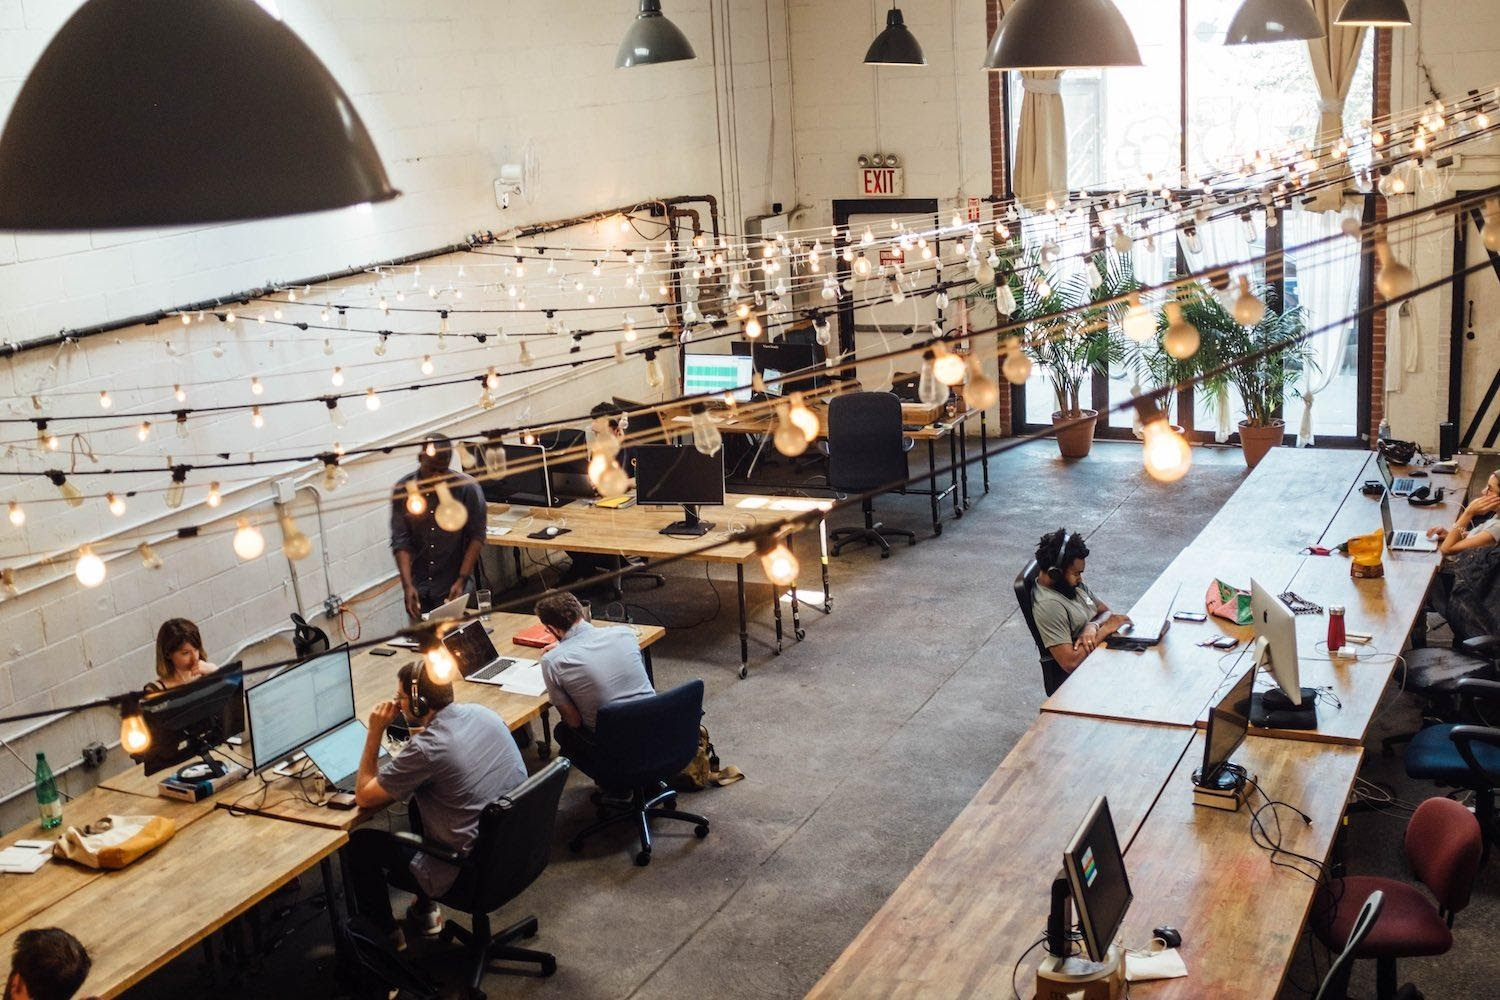 4 Rapidly Growing Tech Industries That Desperately Need Educated Workers